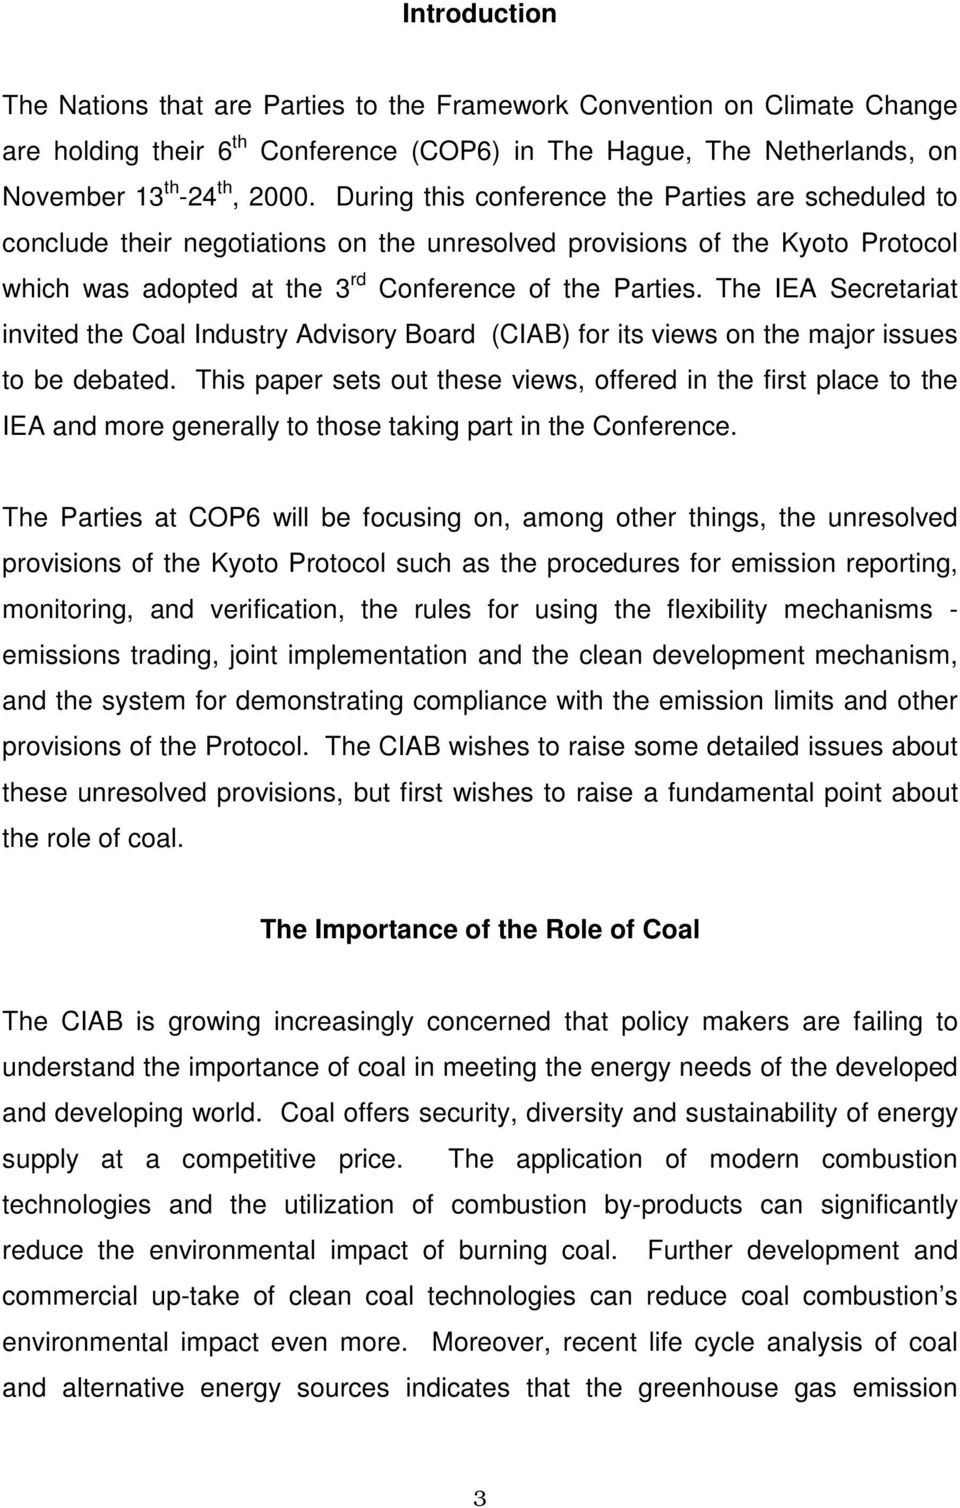 The IEA Secretariat invited the Coal Industry Advisory Board (CIAB) for its views on the major issues to be debated.